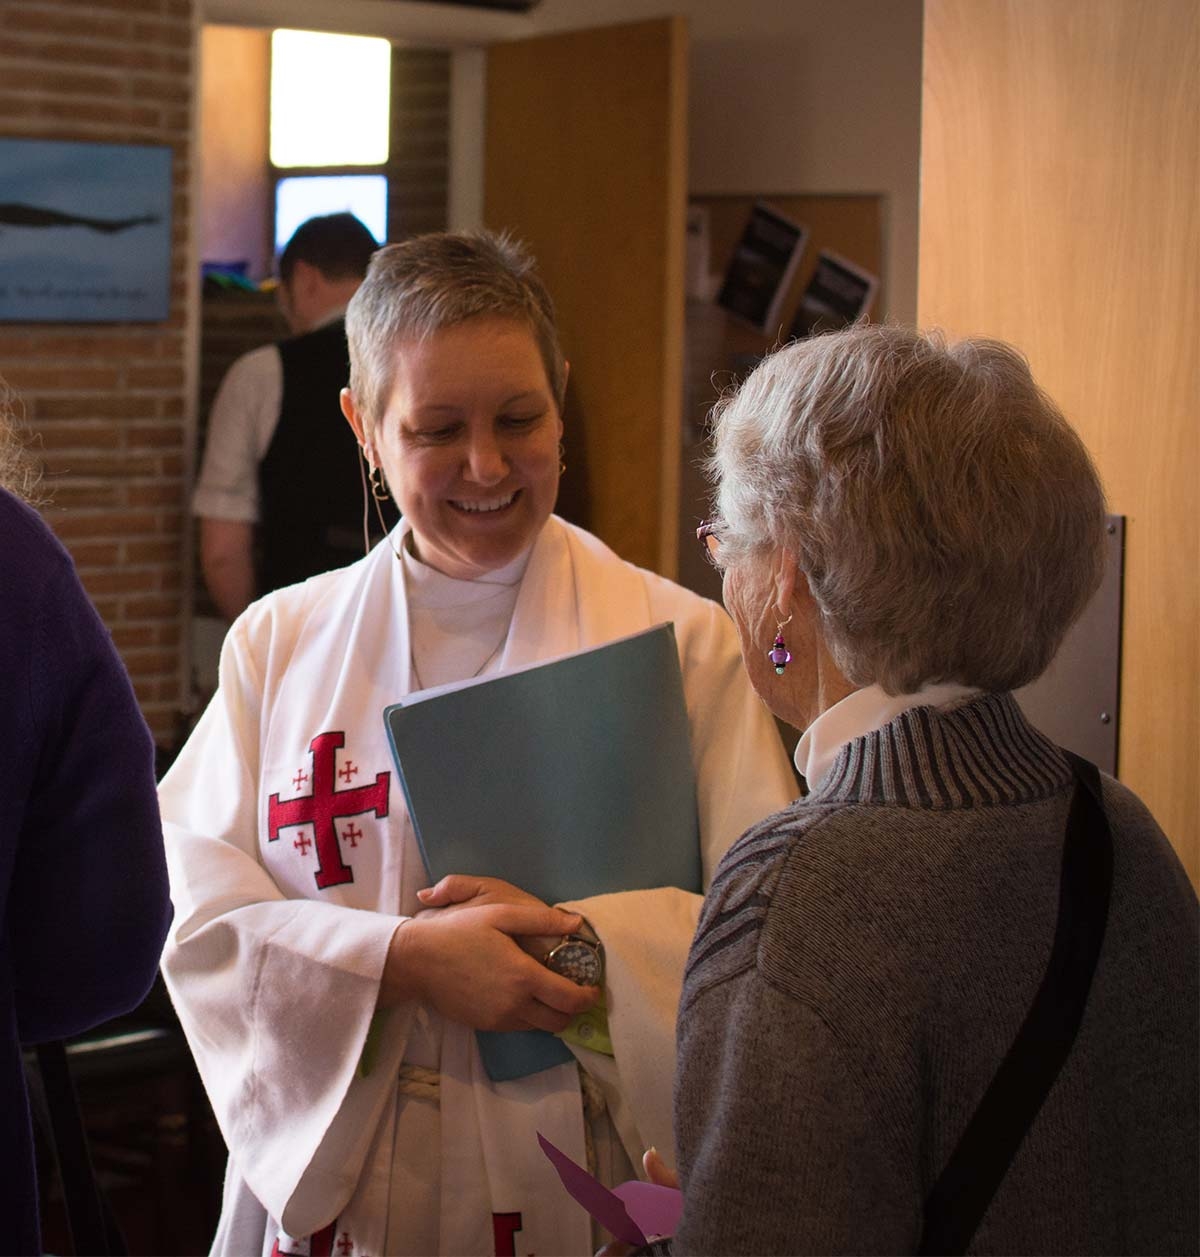 Pastor Cara Tanis welcomes guests at St. John's Lutheran Church in Bellingham, WA